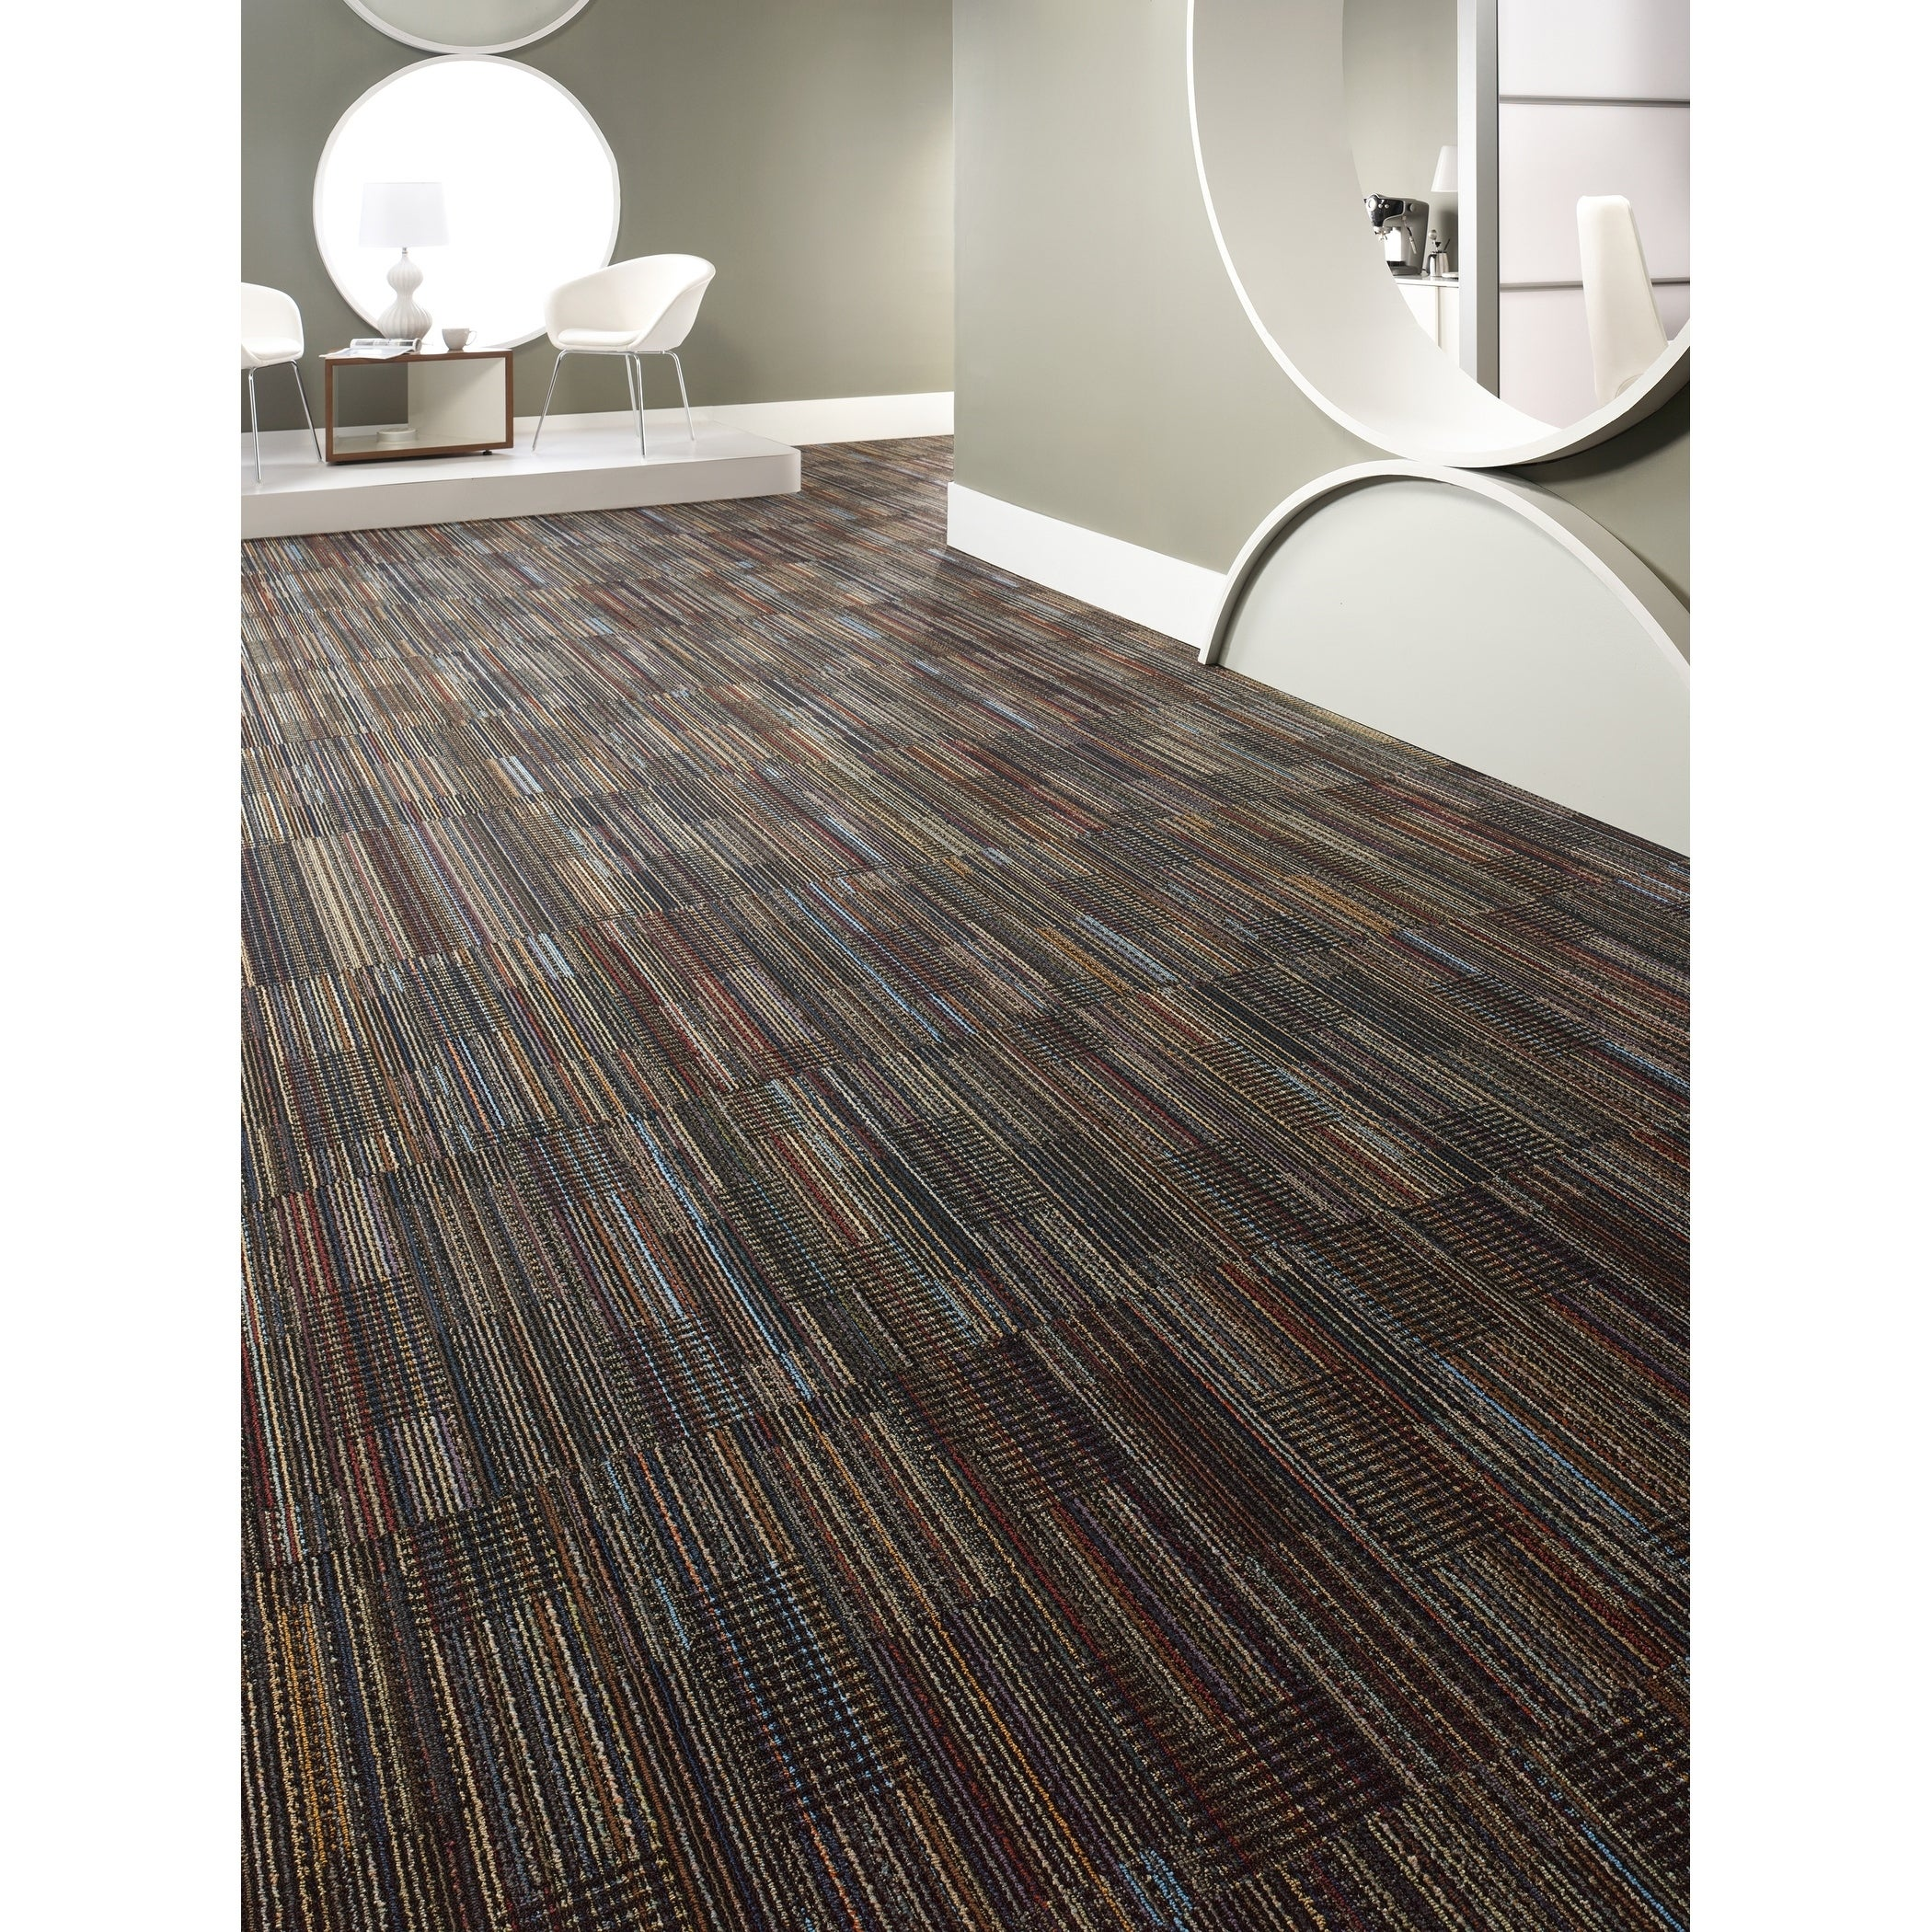 Mohawk Epsom 24 X Carpet Tile In Sea Breeze 72sf Carton Free Shipping On Orders Over 45 17661347